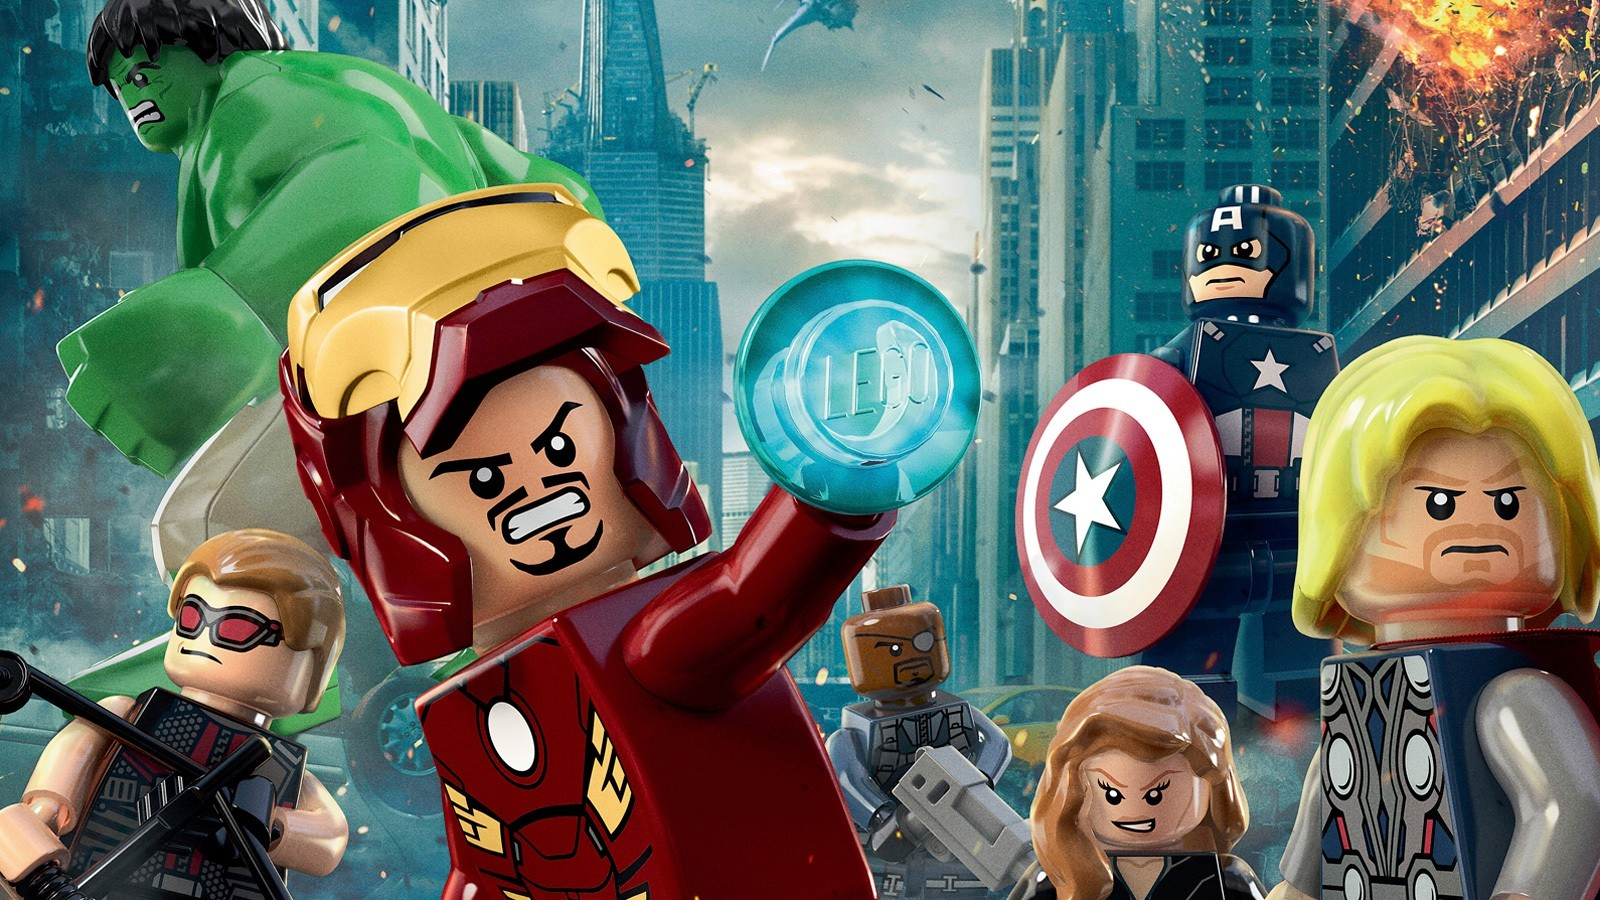 Desktop Wallpaper Avengers Lego Funny Desktop Wallpaper